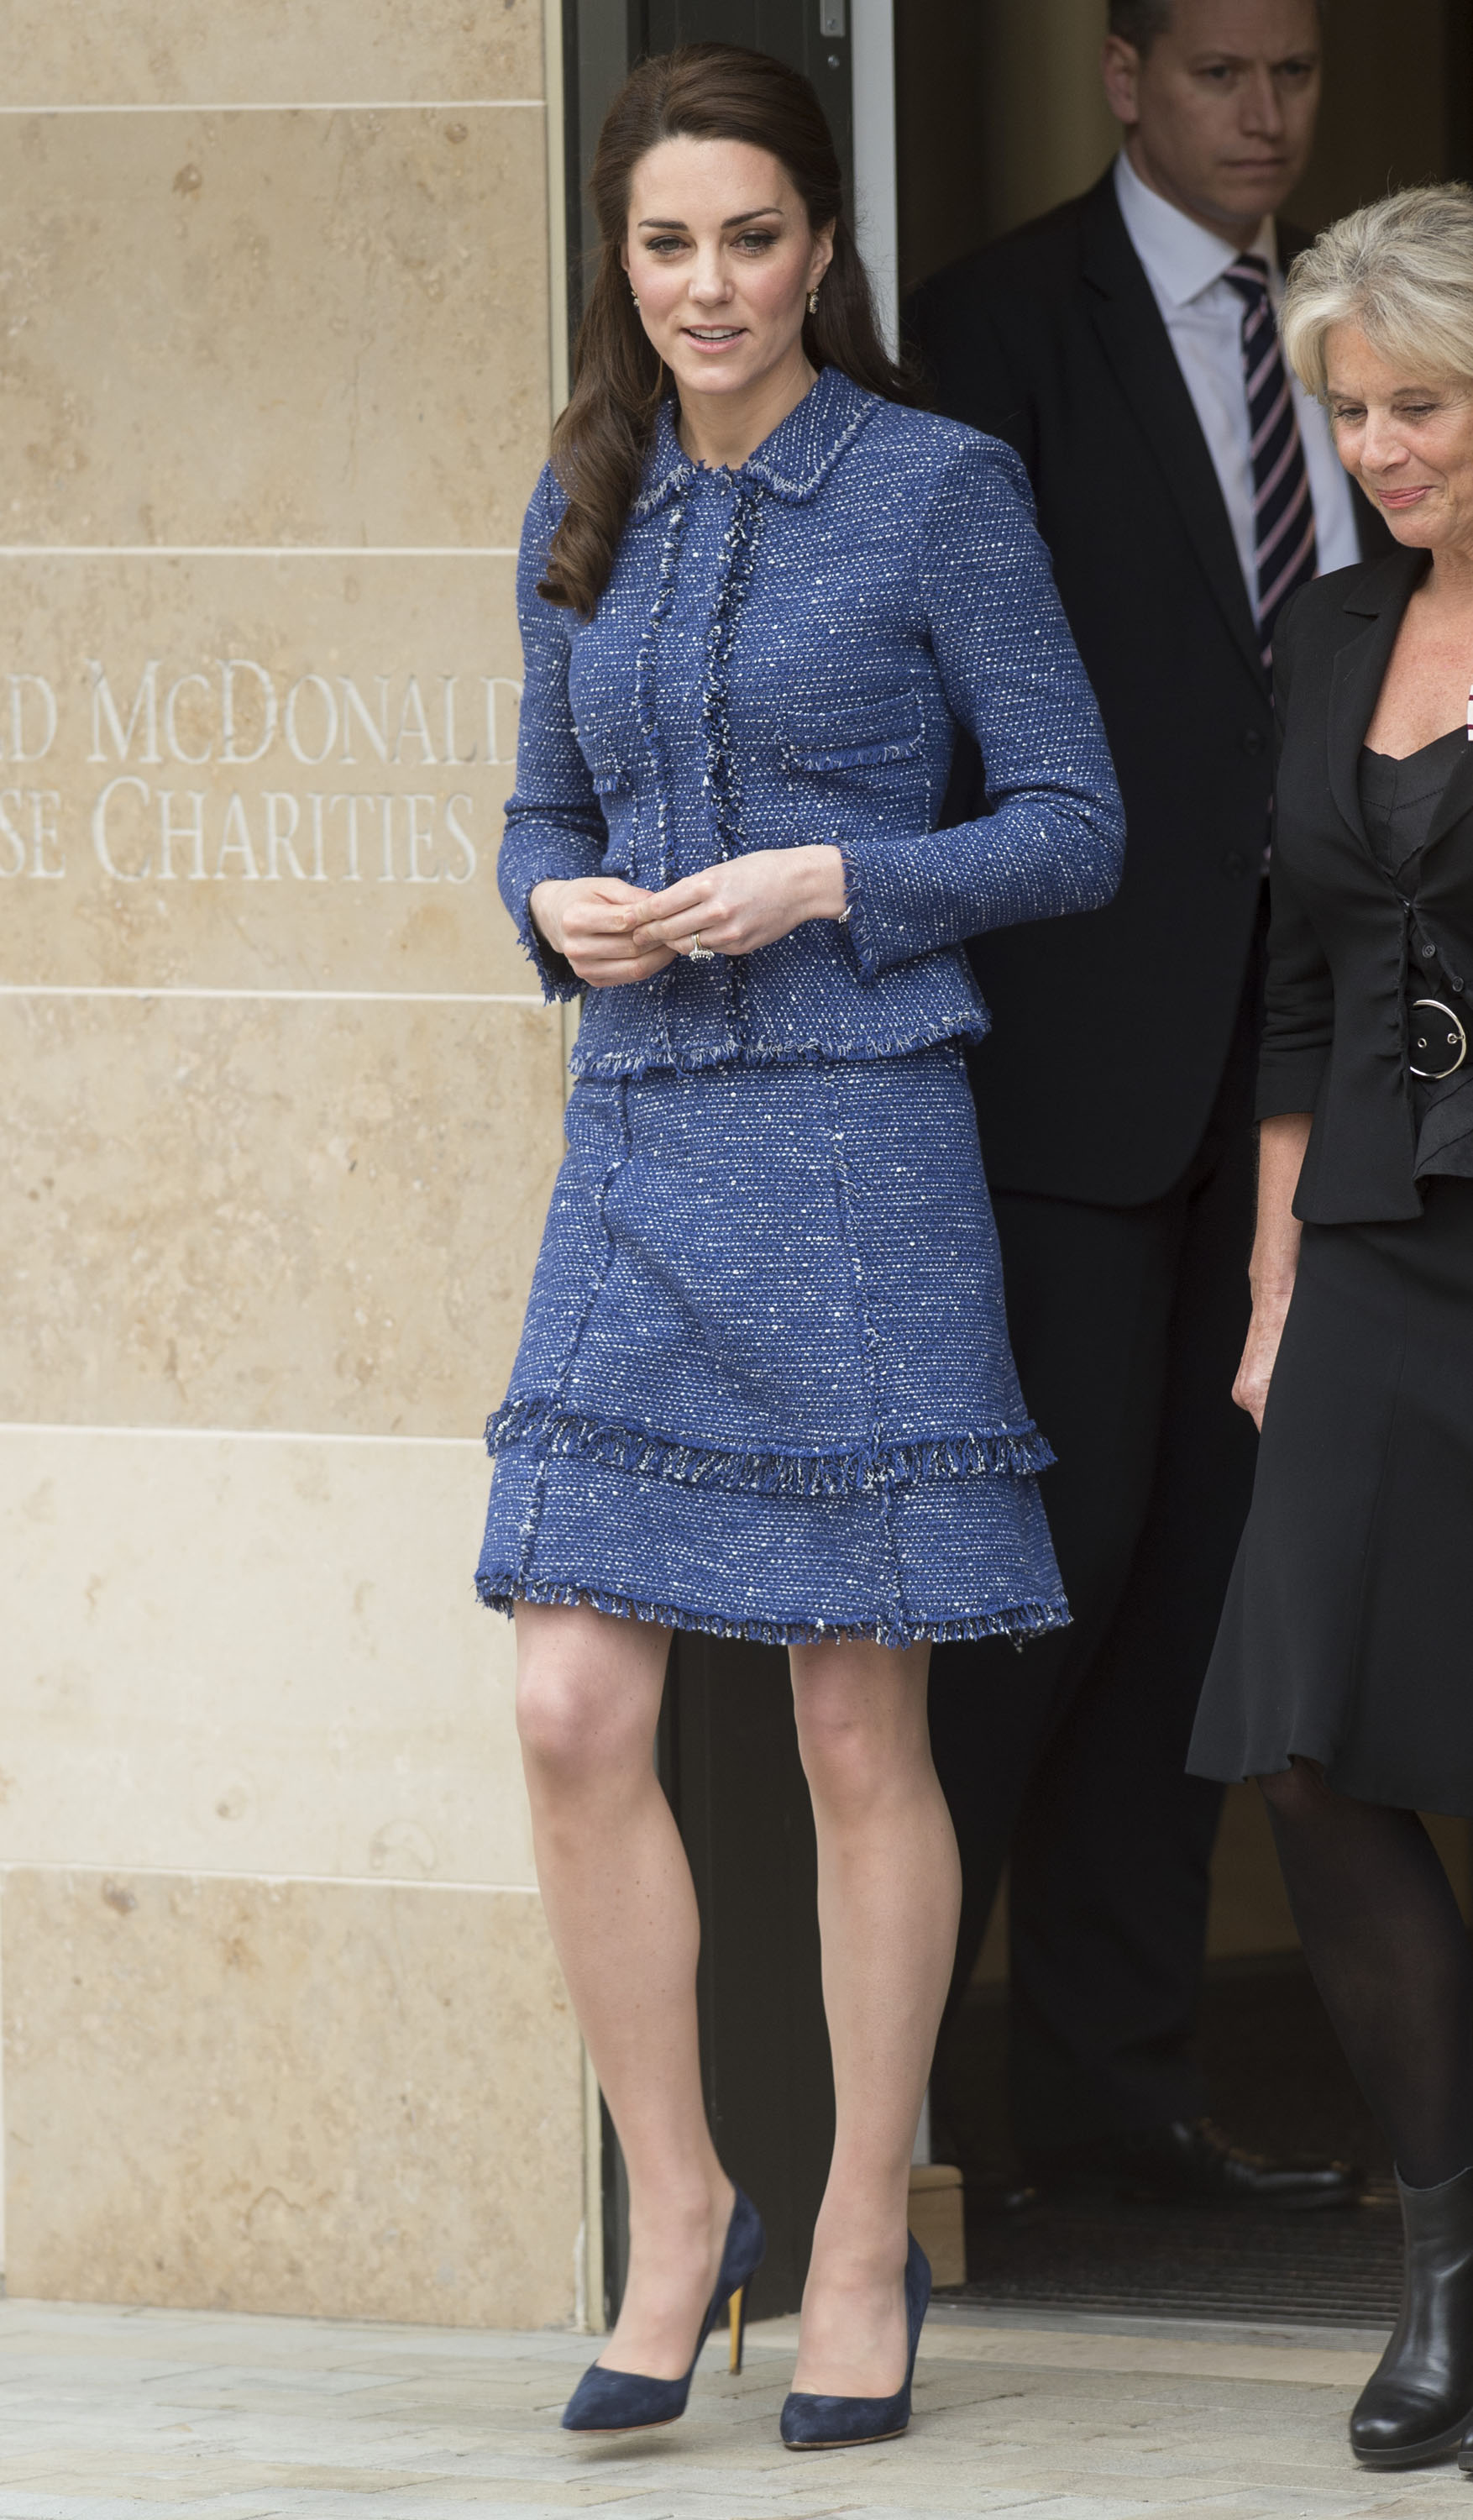 Alert: This Is the First Time Duchess Kate Has Worn Shorts